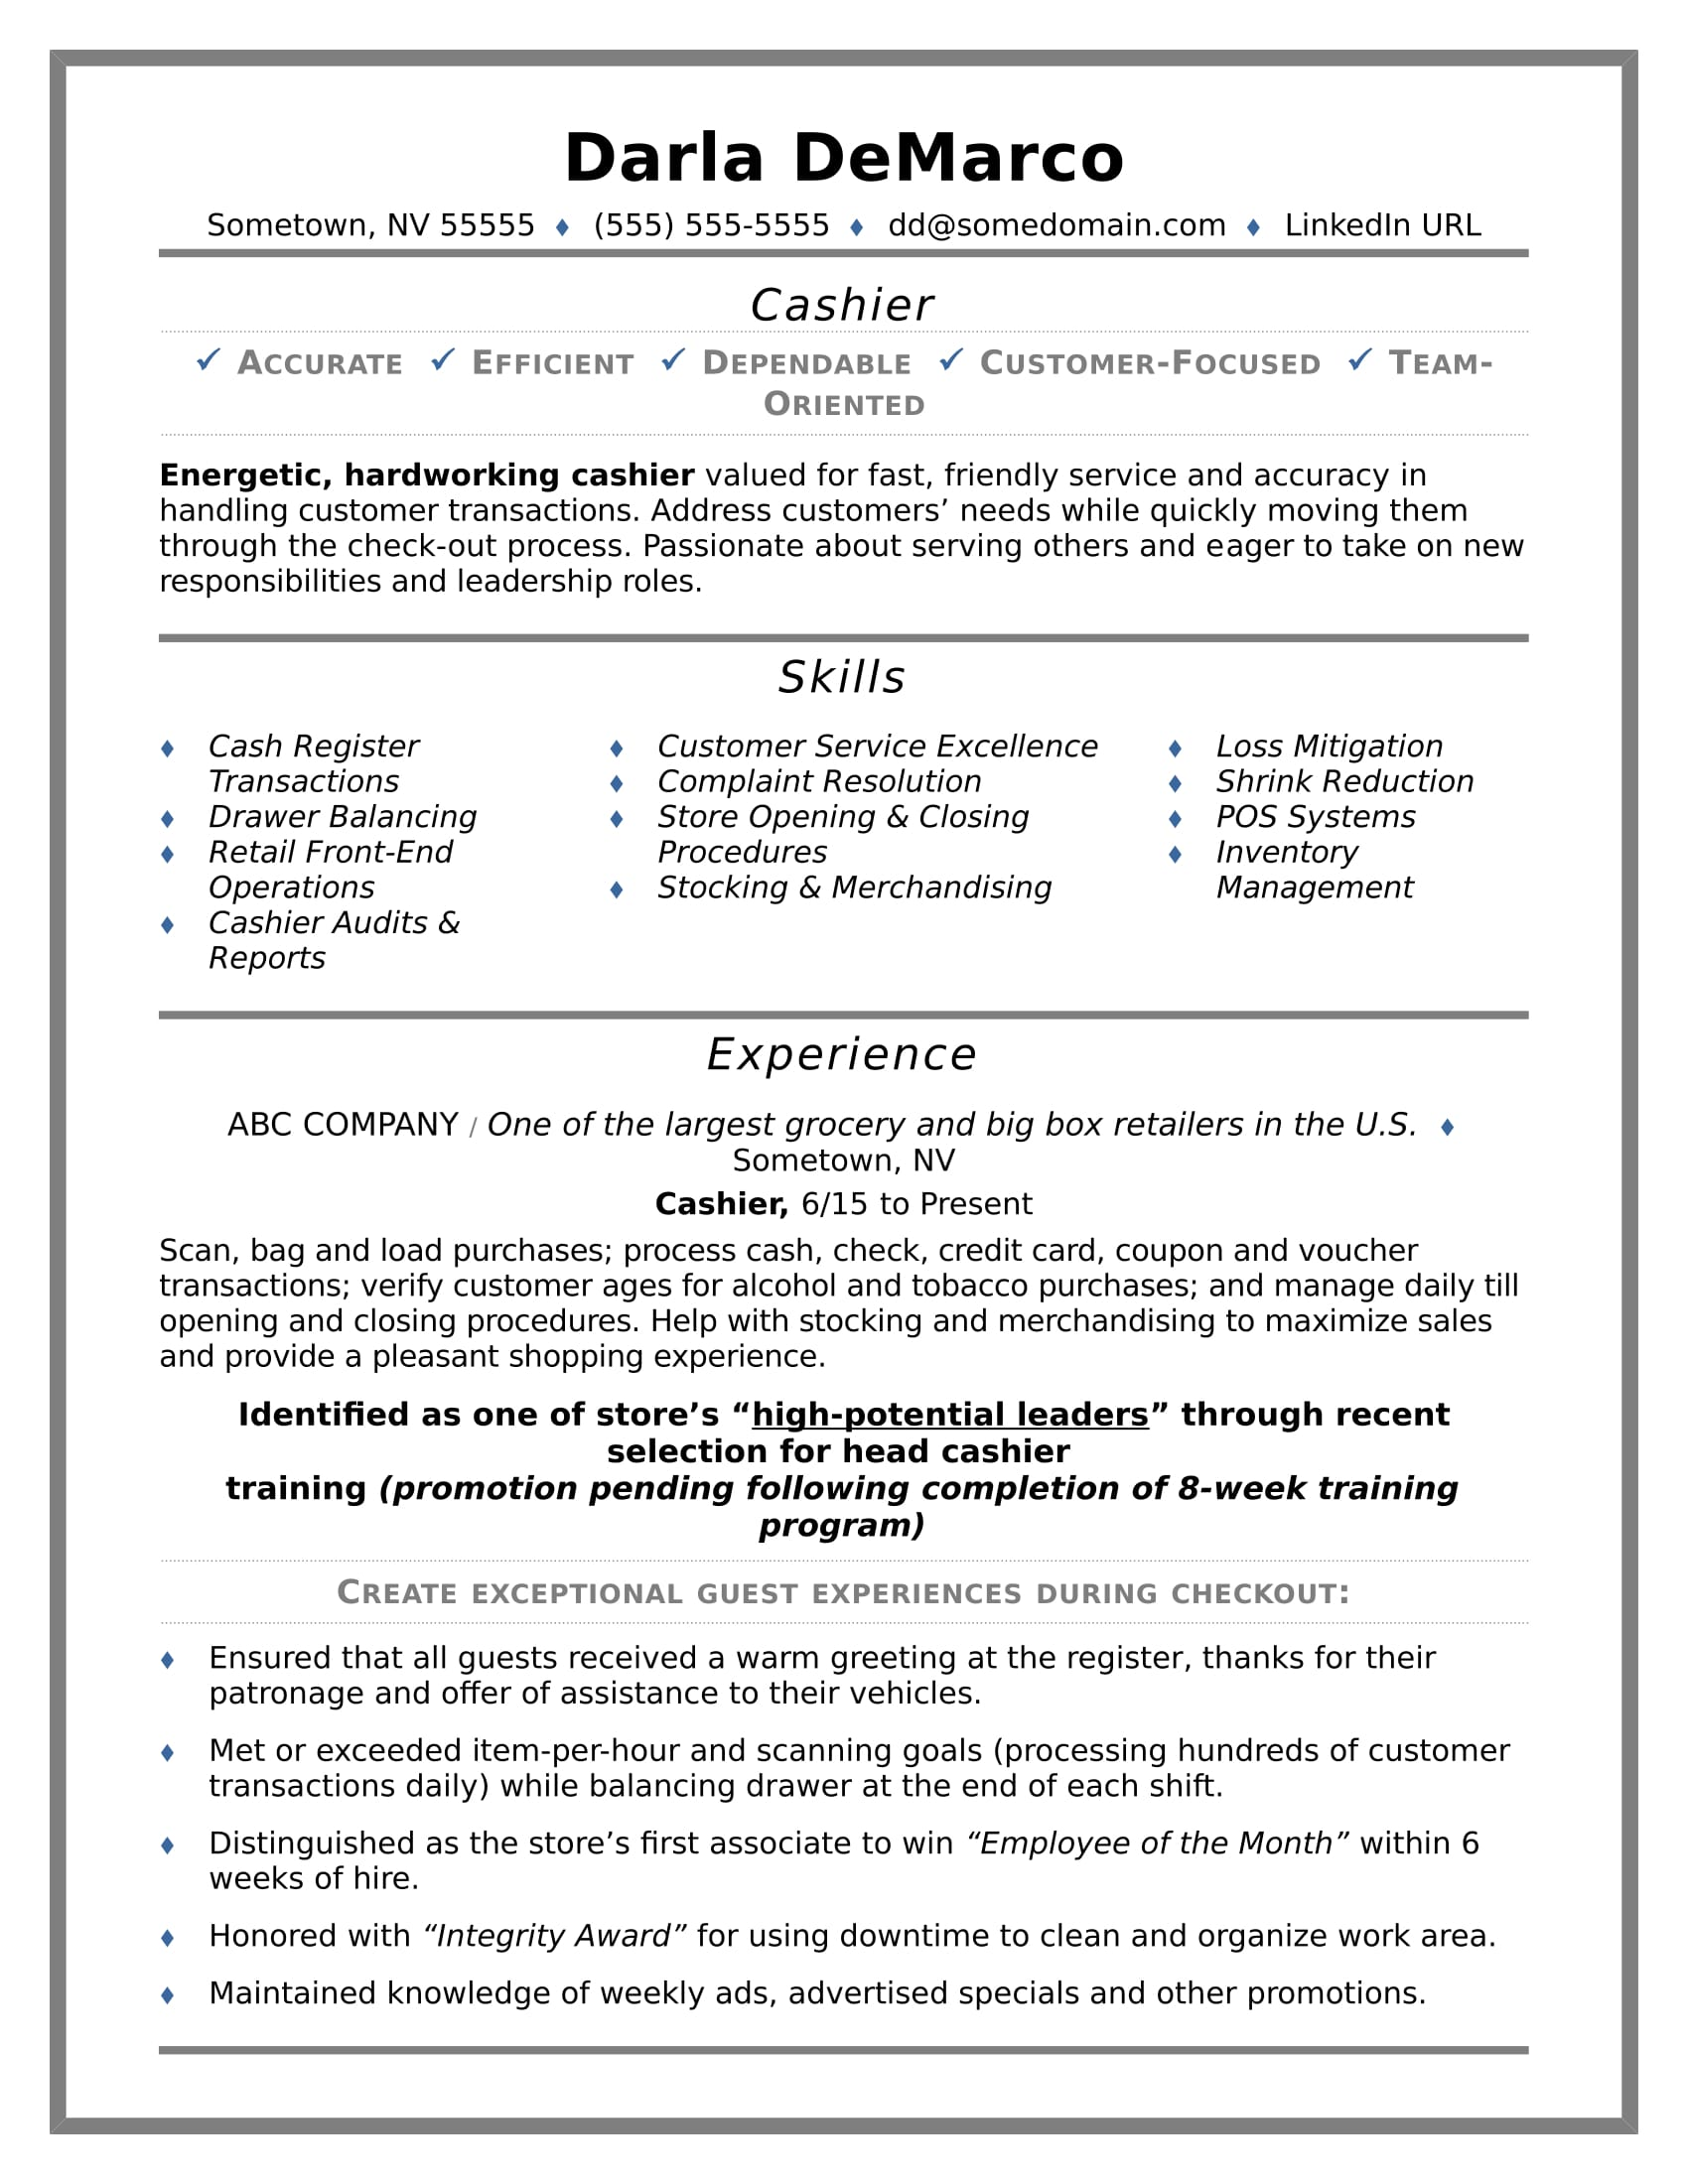 cashier resume sample monster experience professional examples summary example for an Resume Experience Professional Resume Examples